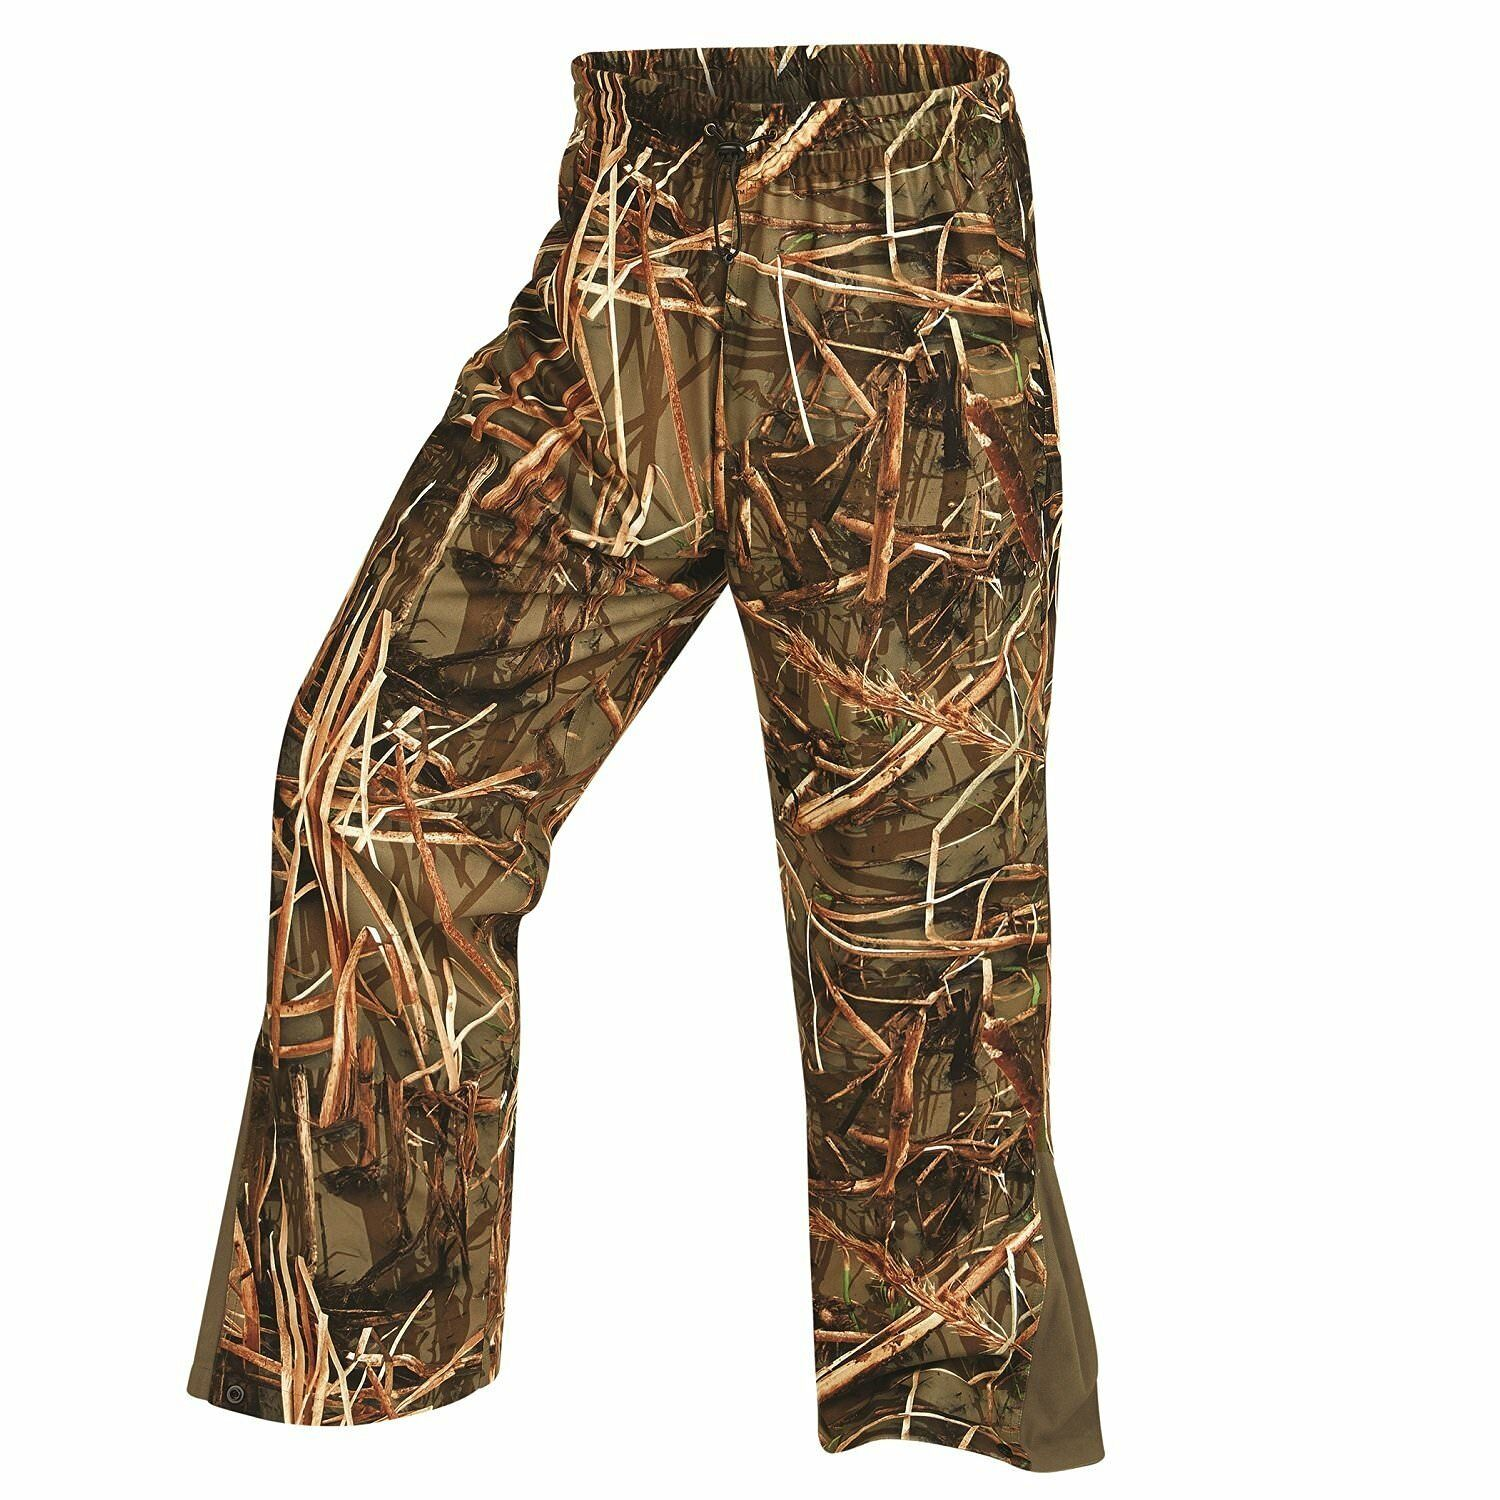 NEW ArcticShield Silent Pursuit Pant in Muddy Water Camouflage - X-Large